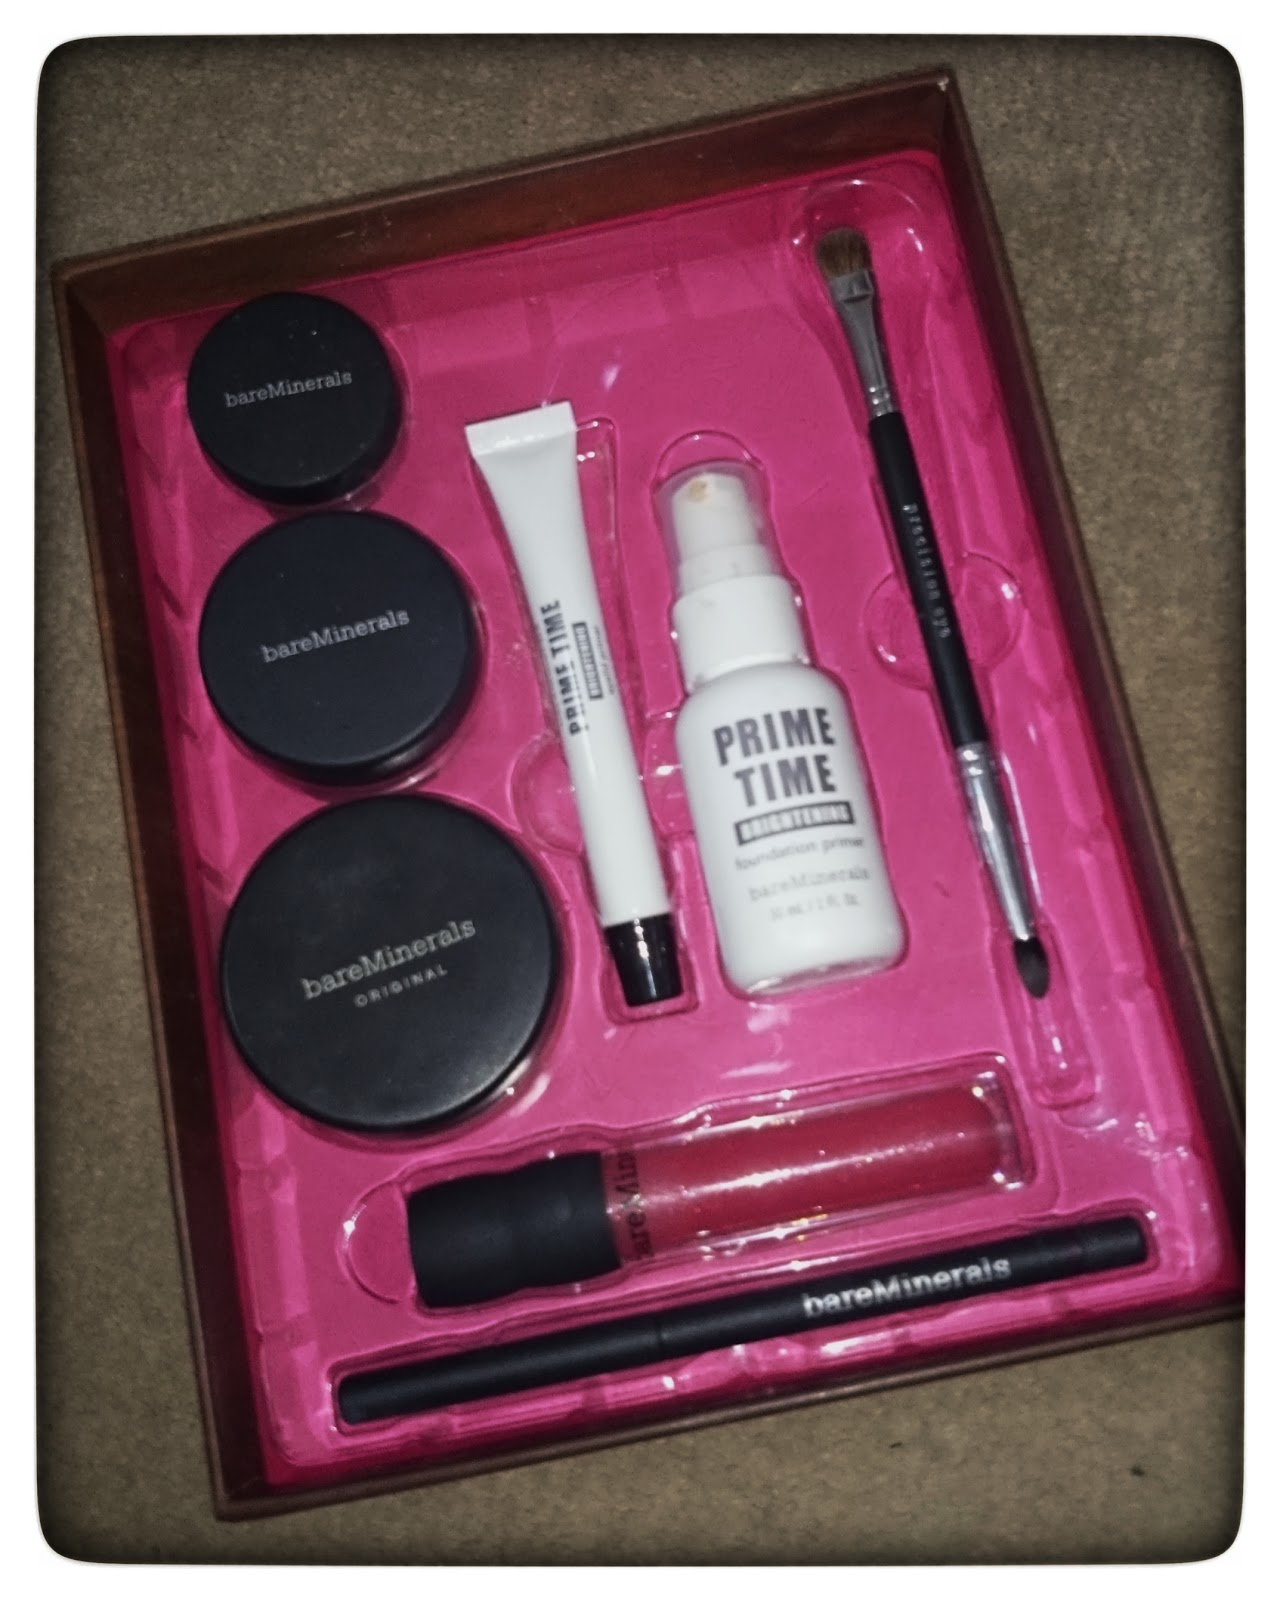 http://www.bareminerals.co.uk/